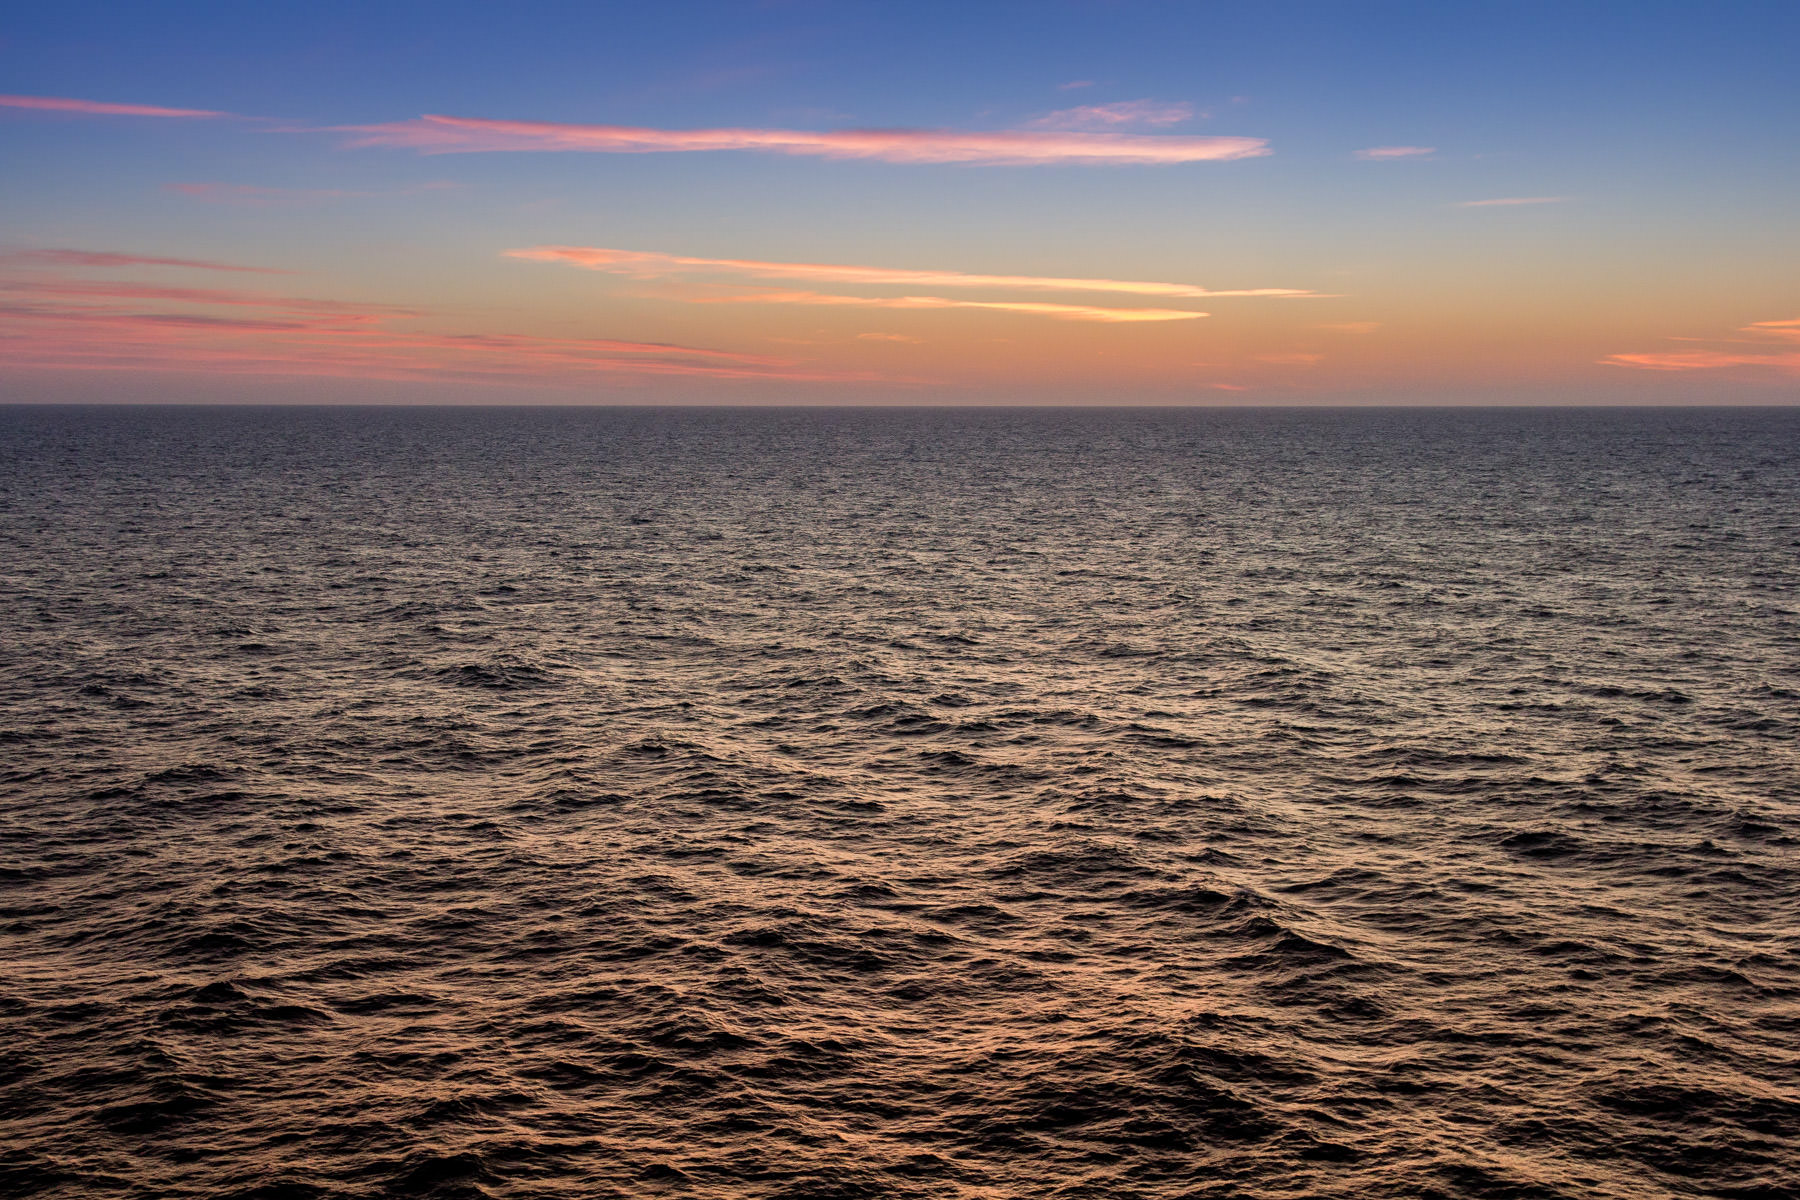 The sun rises on the Gulf of Mexico, somewhere roughly midway between the Texas Gulf Coast and Cuba, as seen from the deck of the cruise ship Carnival Magic.